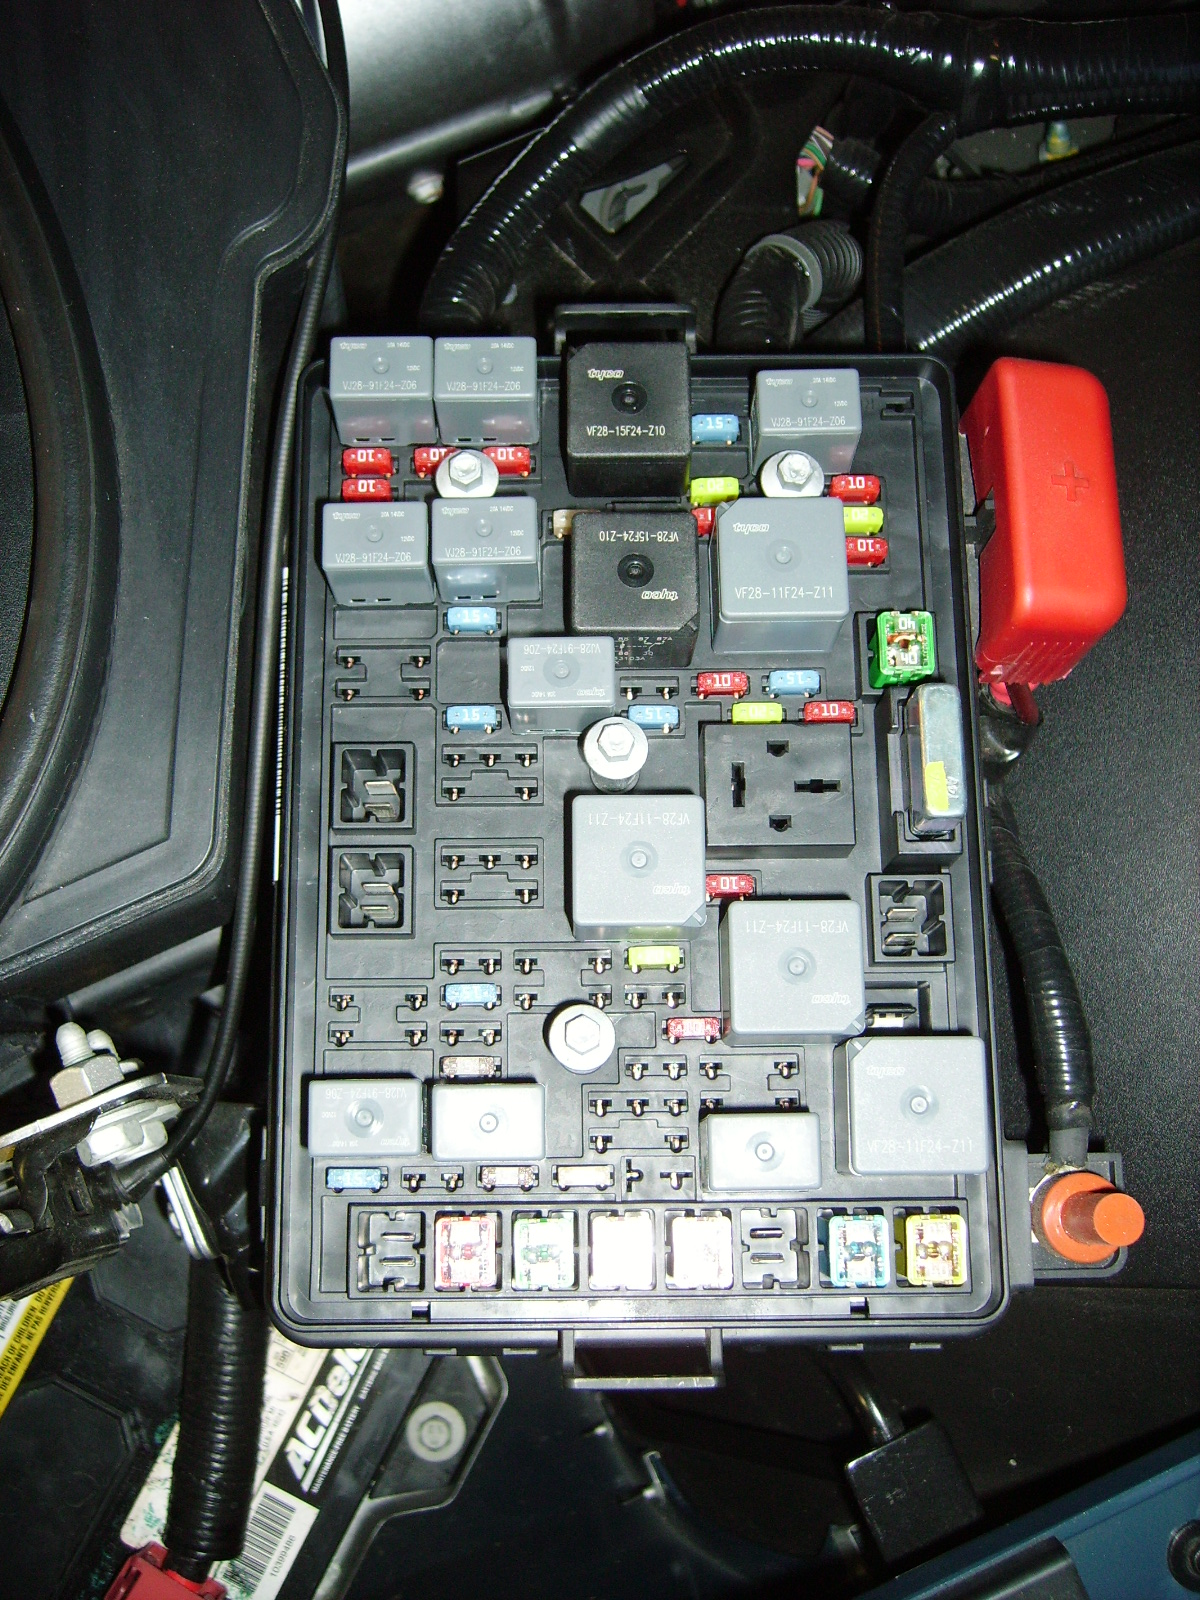 40354d1305120997 reverse light out fuse box under hood reverse light out? saturn sky forums saturn sky forum 2005 saturn ion fuse box diagram at gsmx.co